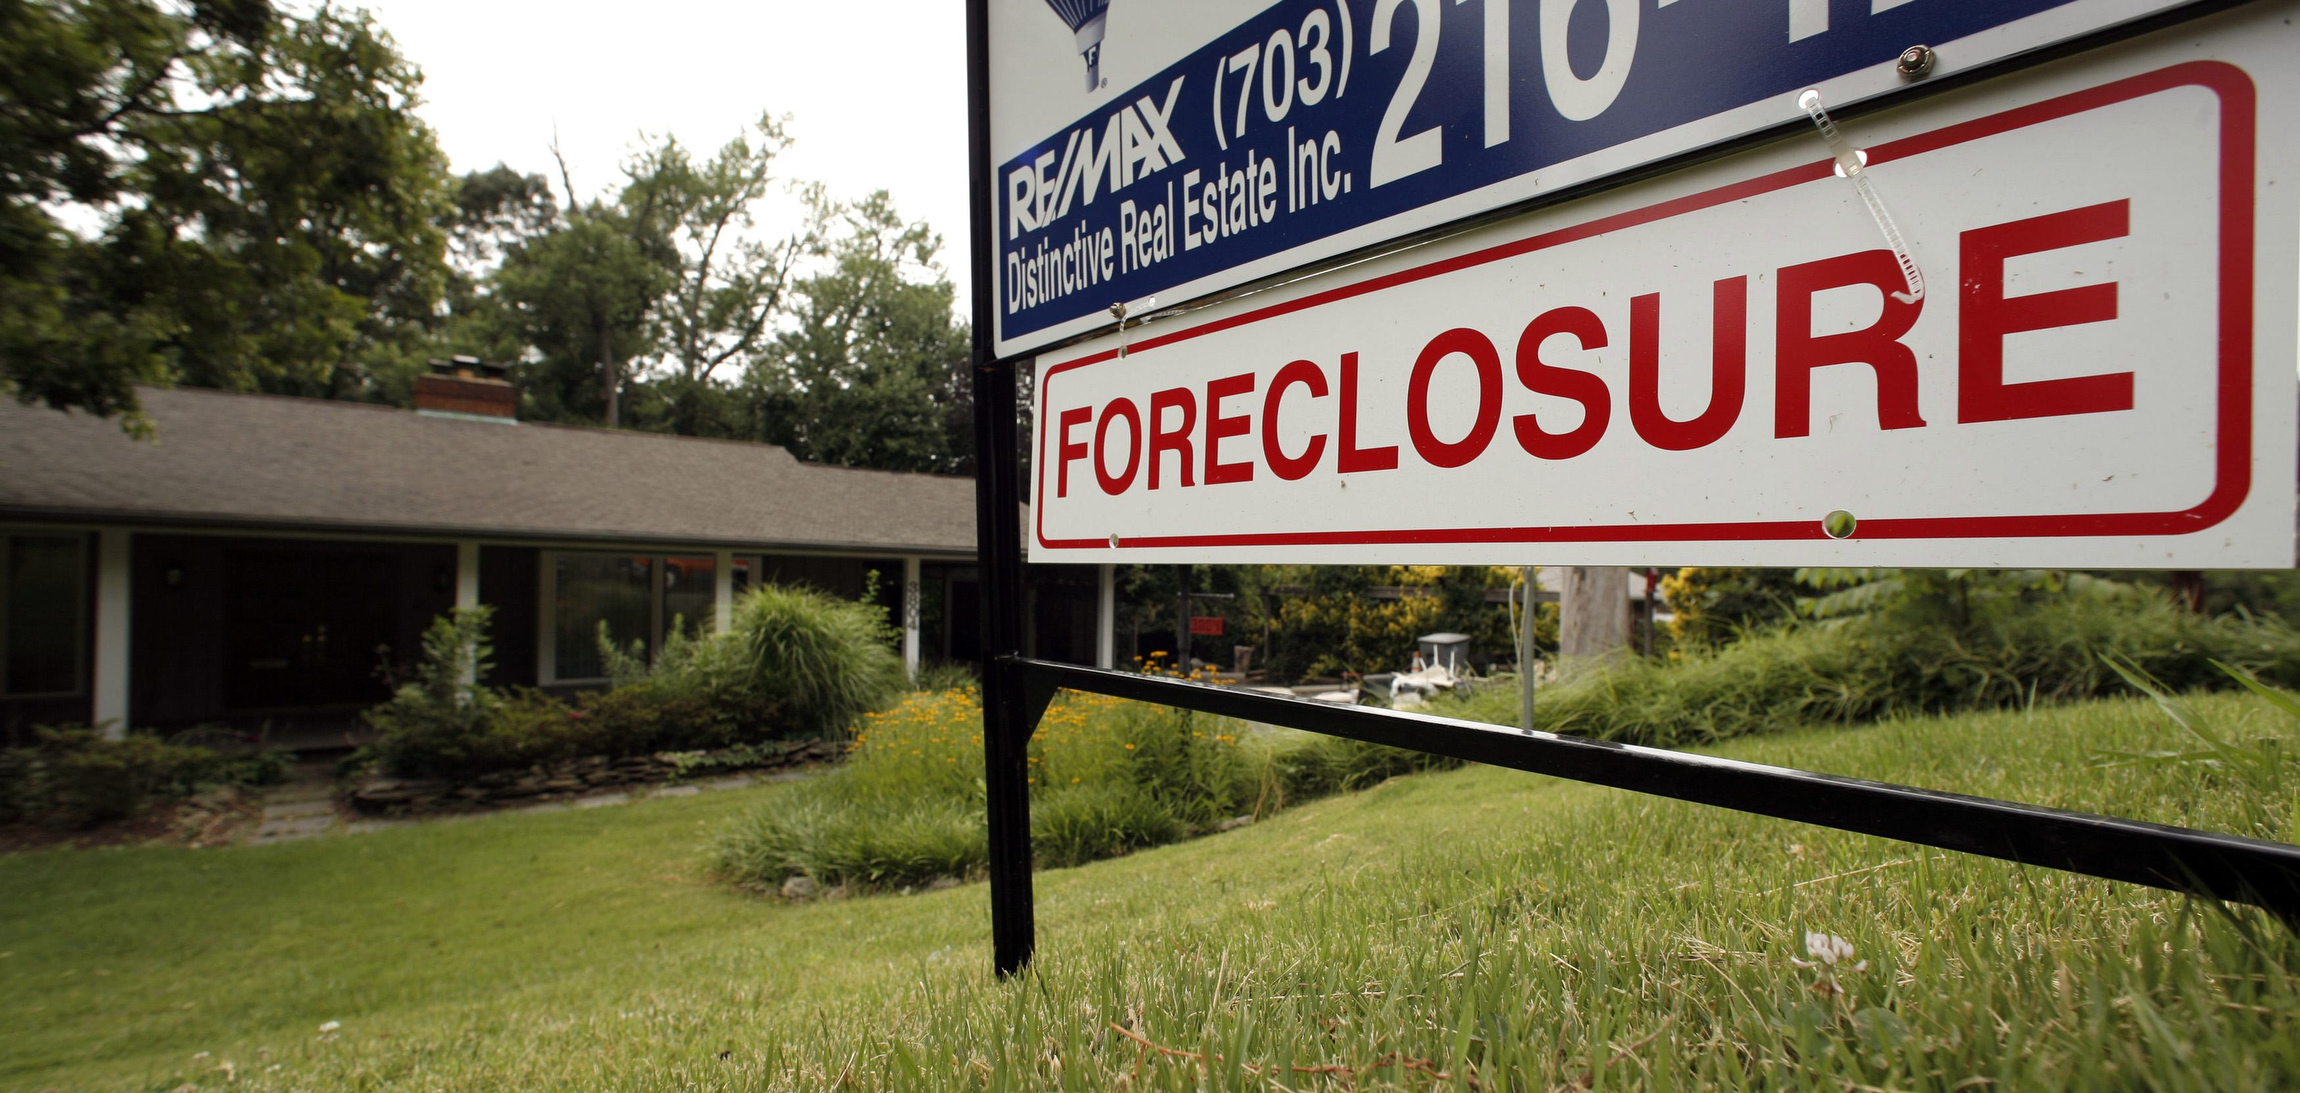 https://cnsblog.files.wordpress.com/2009/08/foreclose1.jpg